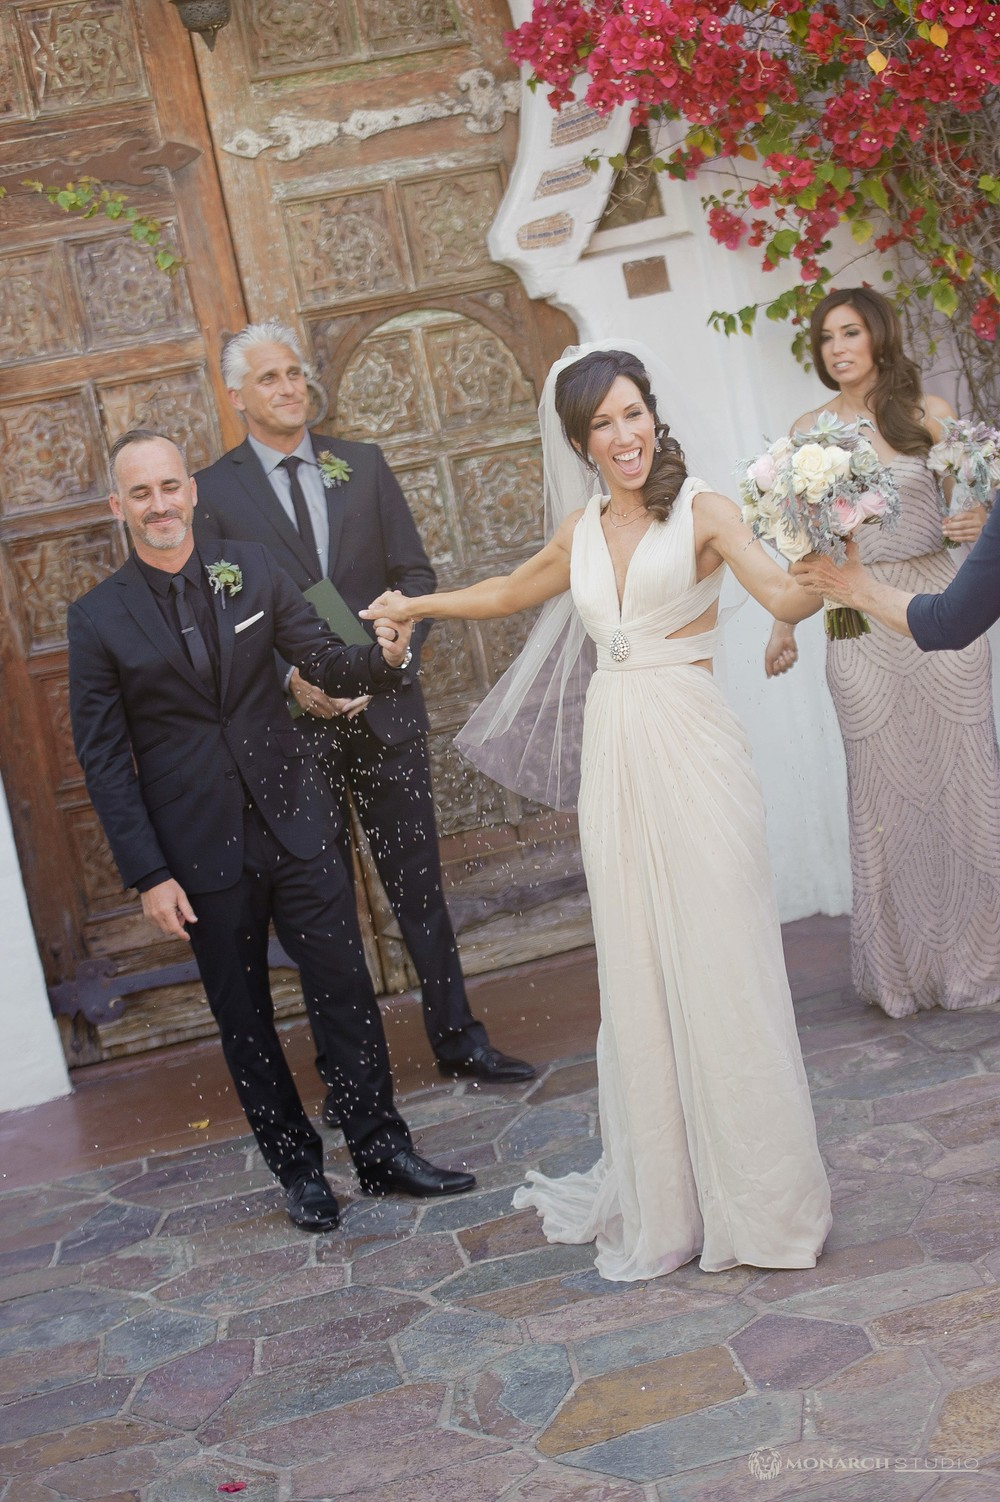 Palm-Springs-Wedding-California-Photographer-57.JPG